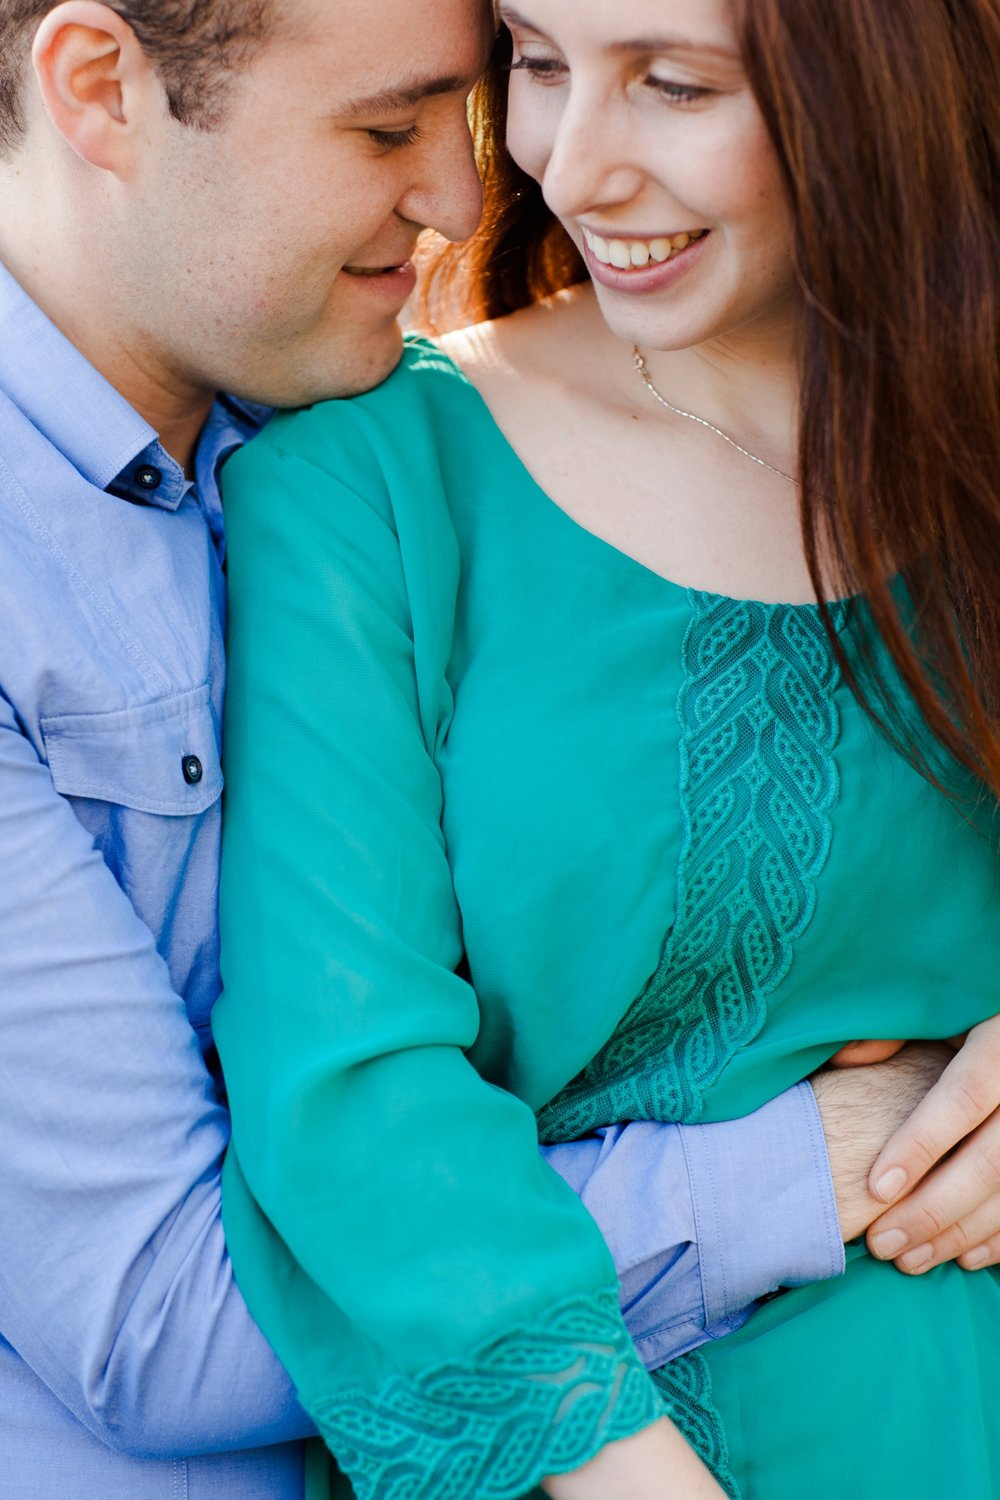 Couples session Sydney by Mr Edwards_3576.jpg